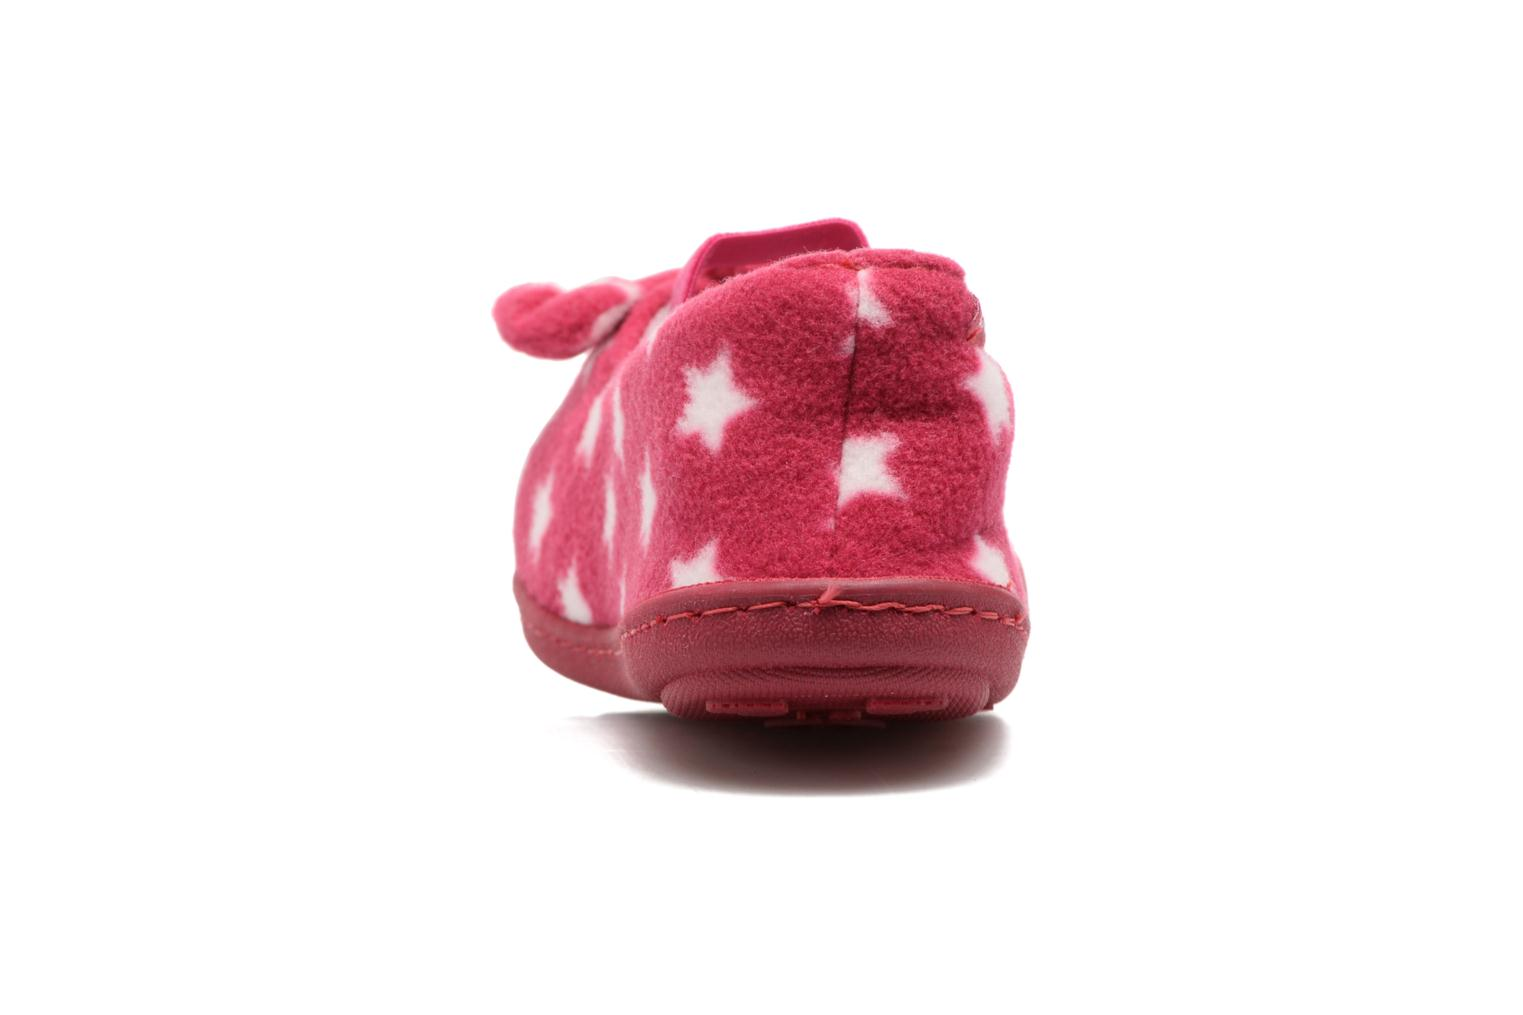 Chaussons Isotoner Ballerine Polaire Rose vue droite